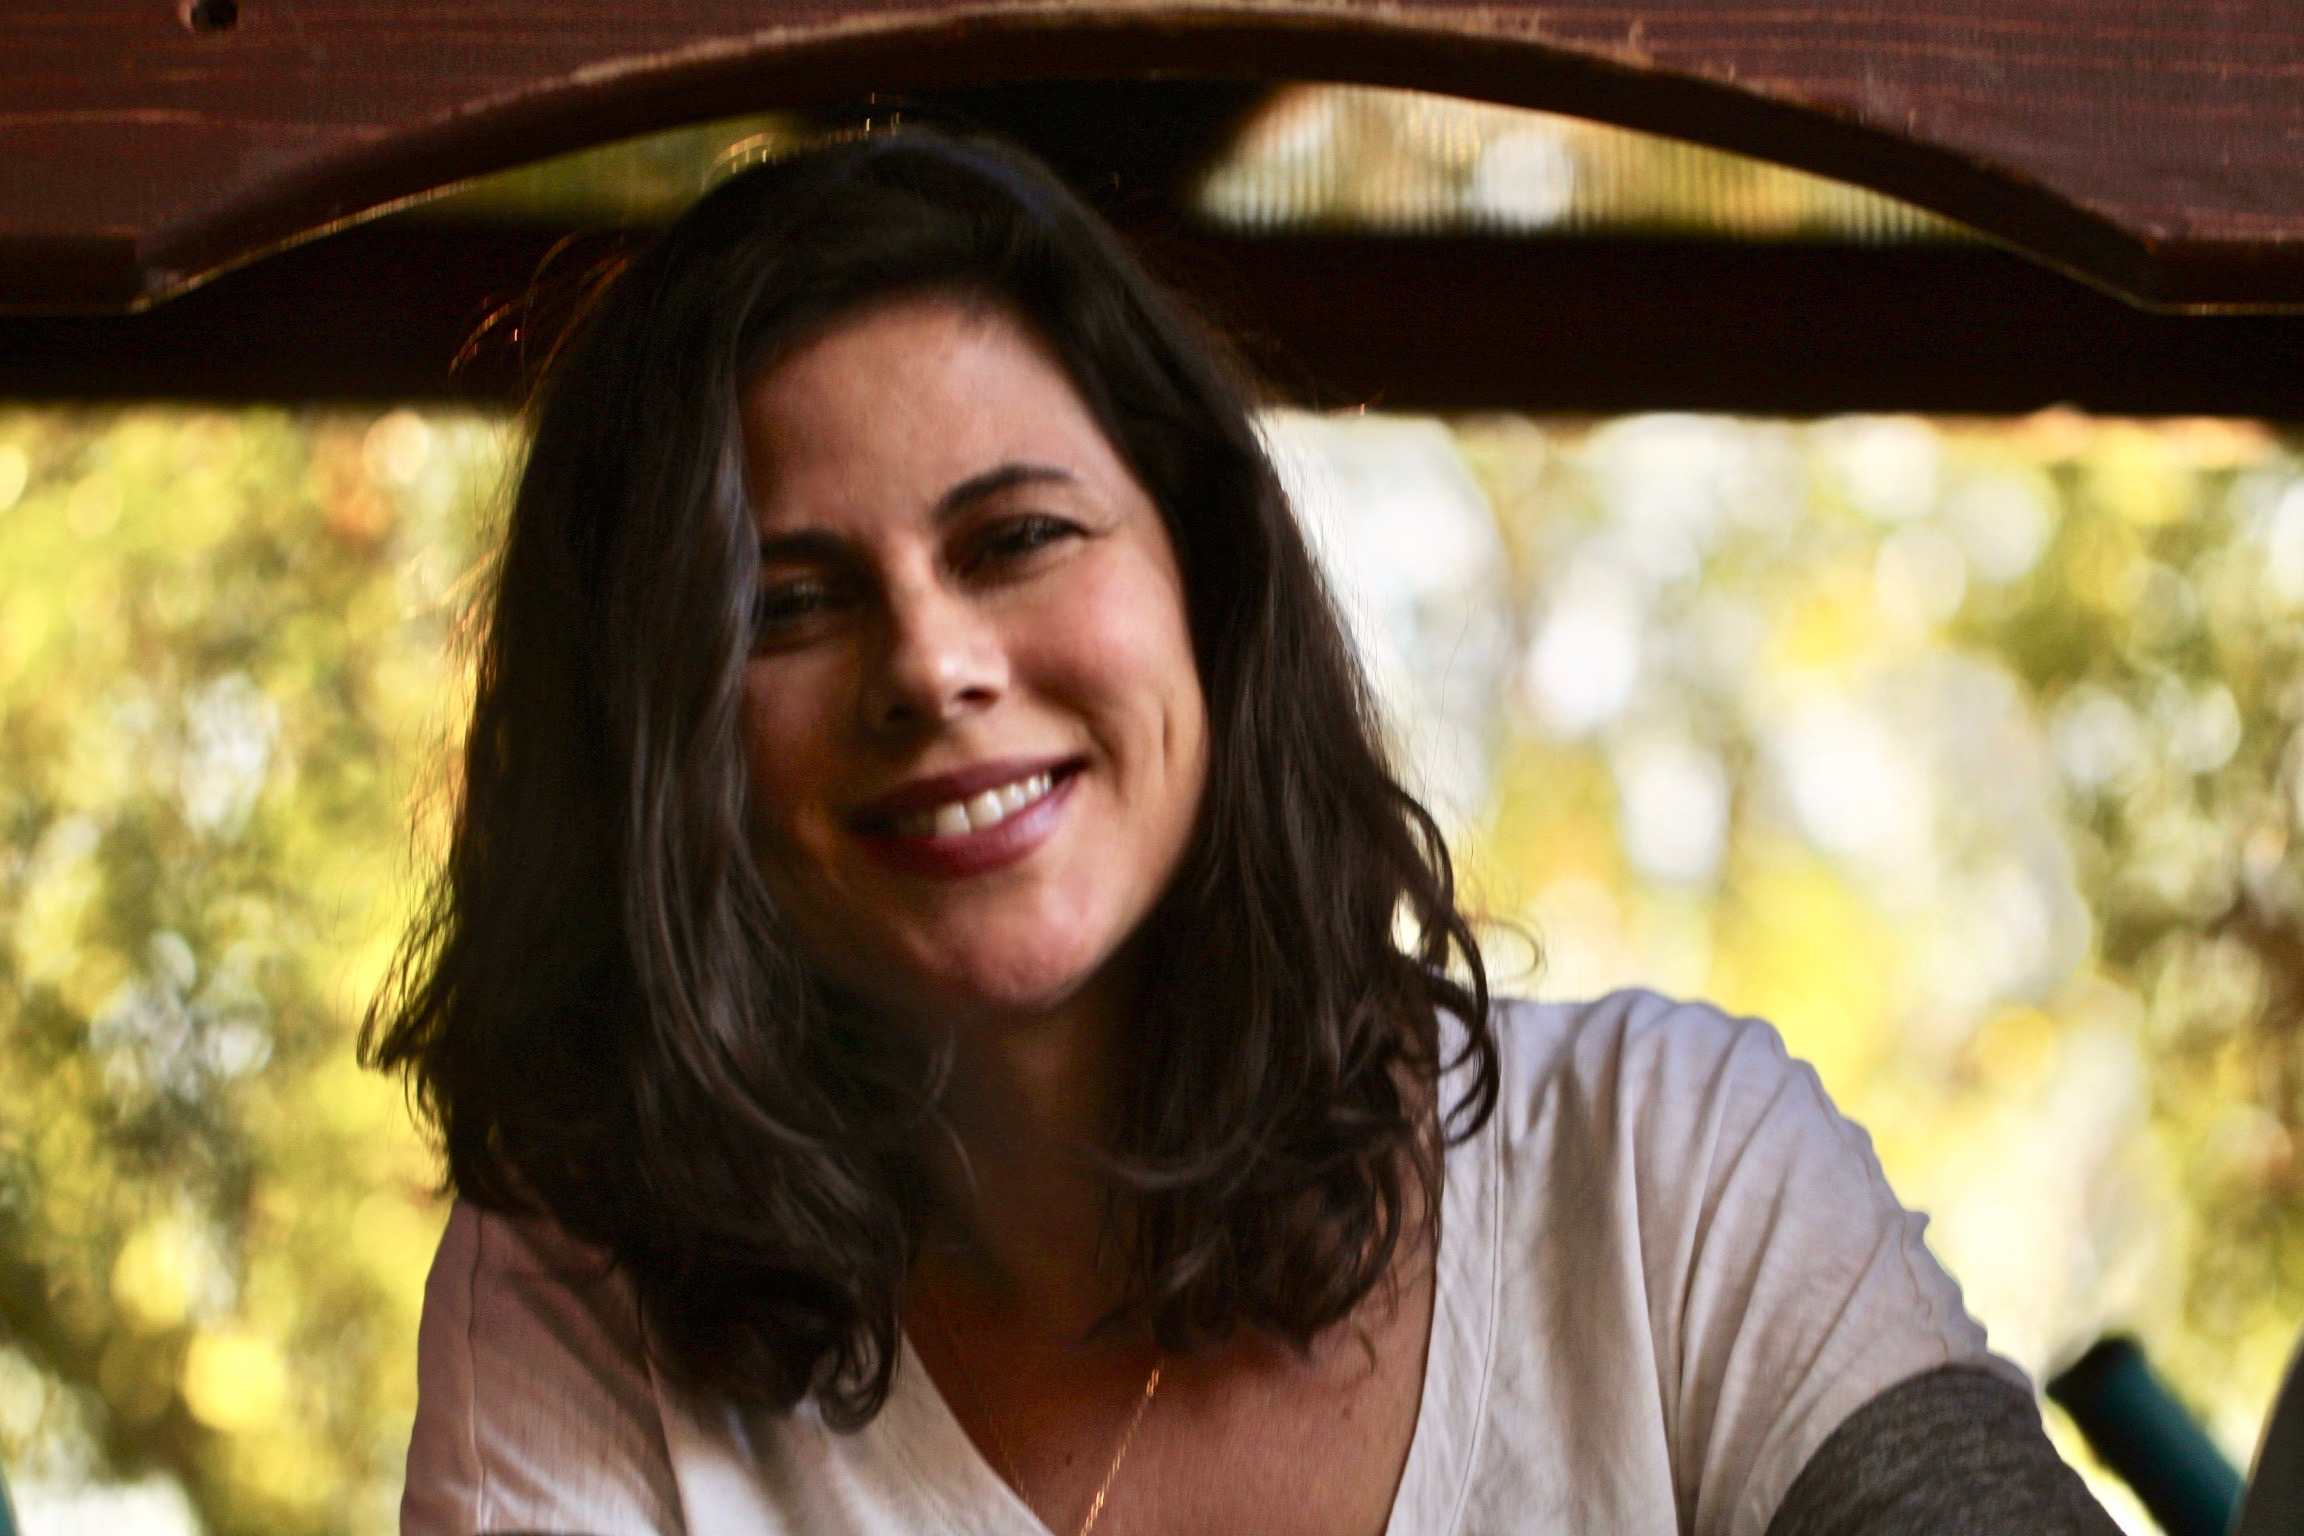 Adriane is the owner and director at Bloom Pediatrics. She is an occupational therapist with expertise in working with children ages birth through 12 years old. Adriane received her Bachelors degree in Psychology from the University of Pittsburgh (1997) and her Masters degree in Occupational Therapy from the University of Southern California (2000). Her specialty areas include Autism Spectrum Disorders, executive functioning, feeding challenges, gifted and twice exceptional children, gross motor skills and coordination, handwriting and fine motor skills, Sensory Processing Disorders, self-regulation and social skills support. Adriane has advanced training in Sensory Integration Theory and Practice and holds an Advanced Practice Certification in Swallowing Assessment, Evaluation, and Intervention (SWC). She is trained in DIR/Floortime, SENG-Model Parent Groups, and is a Certified Infant Massage Instructor. To further support the families she works with, Adriane is completing her Special Education Advocate Training through the  Council of Parent Attorneys and Advocates . She uses a multifaceted approach that incorporates this extensive background and experience in working with children and their families. She lives in Los Angeles with her husband and four children.  As a SENG-Model Parent Group Master Facilitator, Adriane offers support to parents raising gifted children. Her efforts in this area were recognized as she was presented with the 2018 SMPG Facilitator of the Year award. In 2015 she co-founded the Westside of Los Angeles Gifted Group, an in-person and online community of friendship and support for families with gifted children. In 2017 she co-founded Square Pegs, a service for families seeking alternative paths in education and offering community education about the social-emotional implications of giftedness.